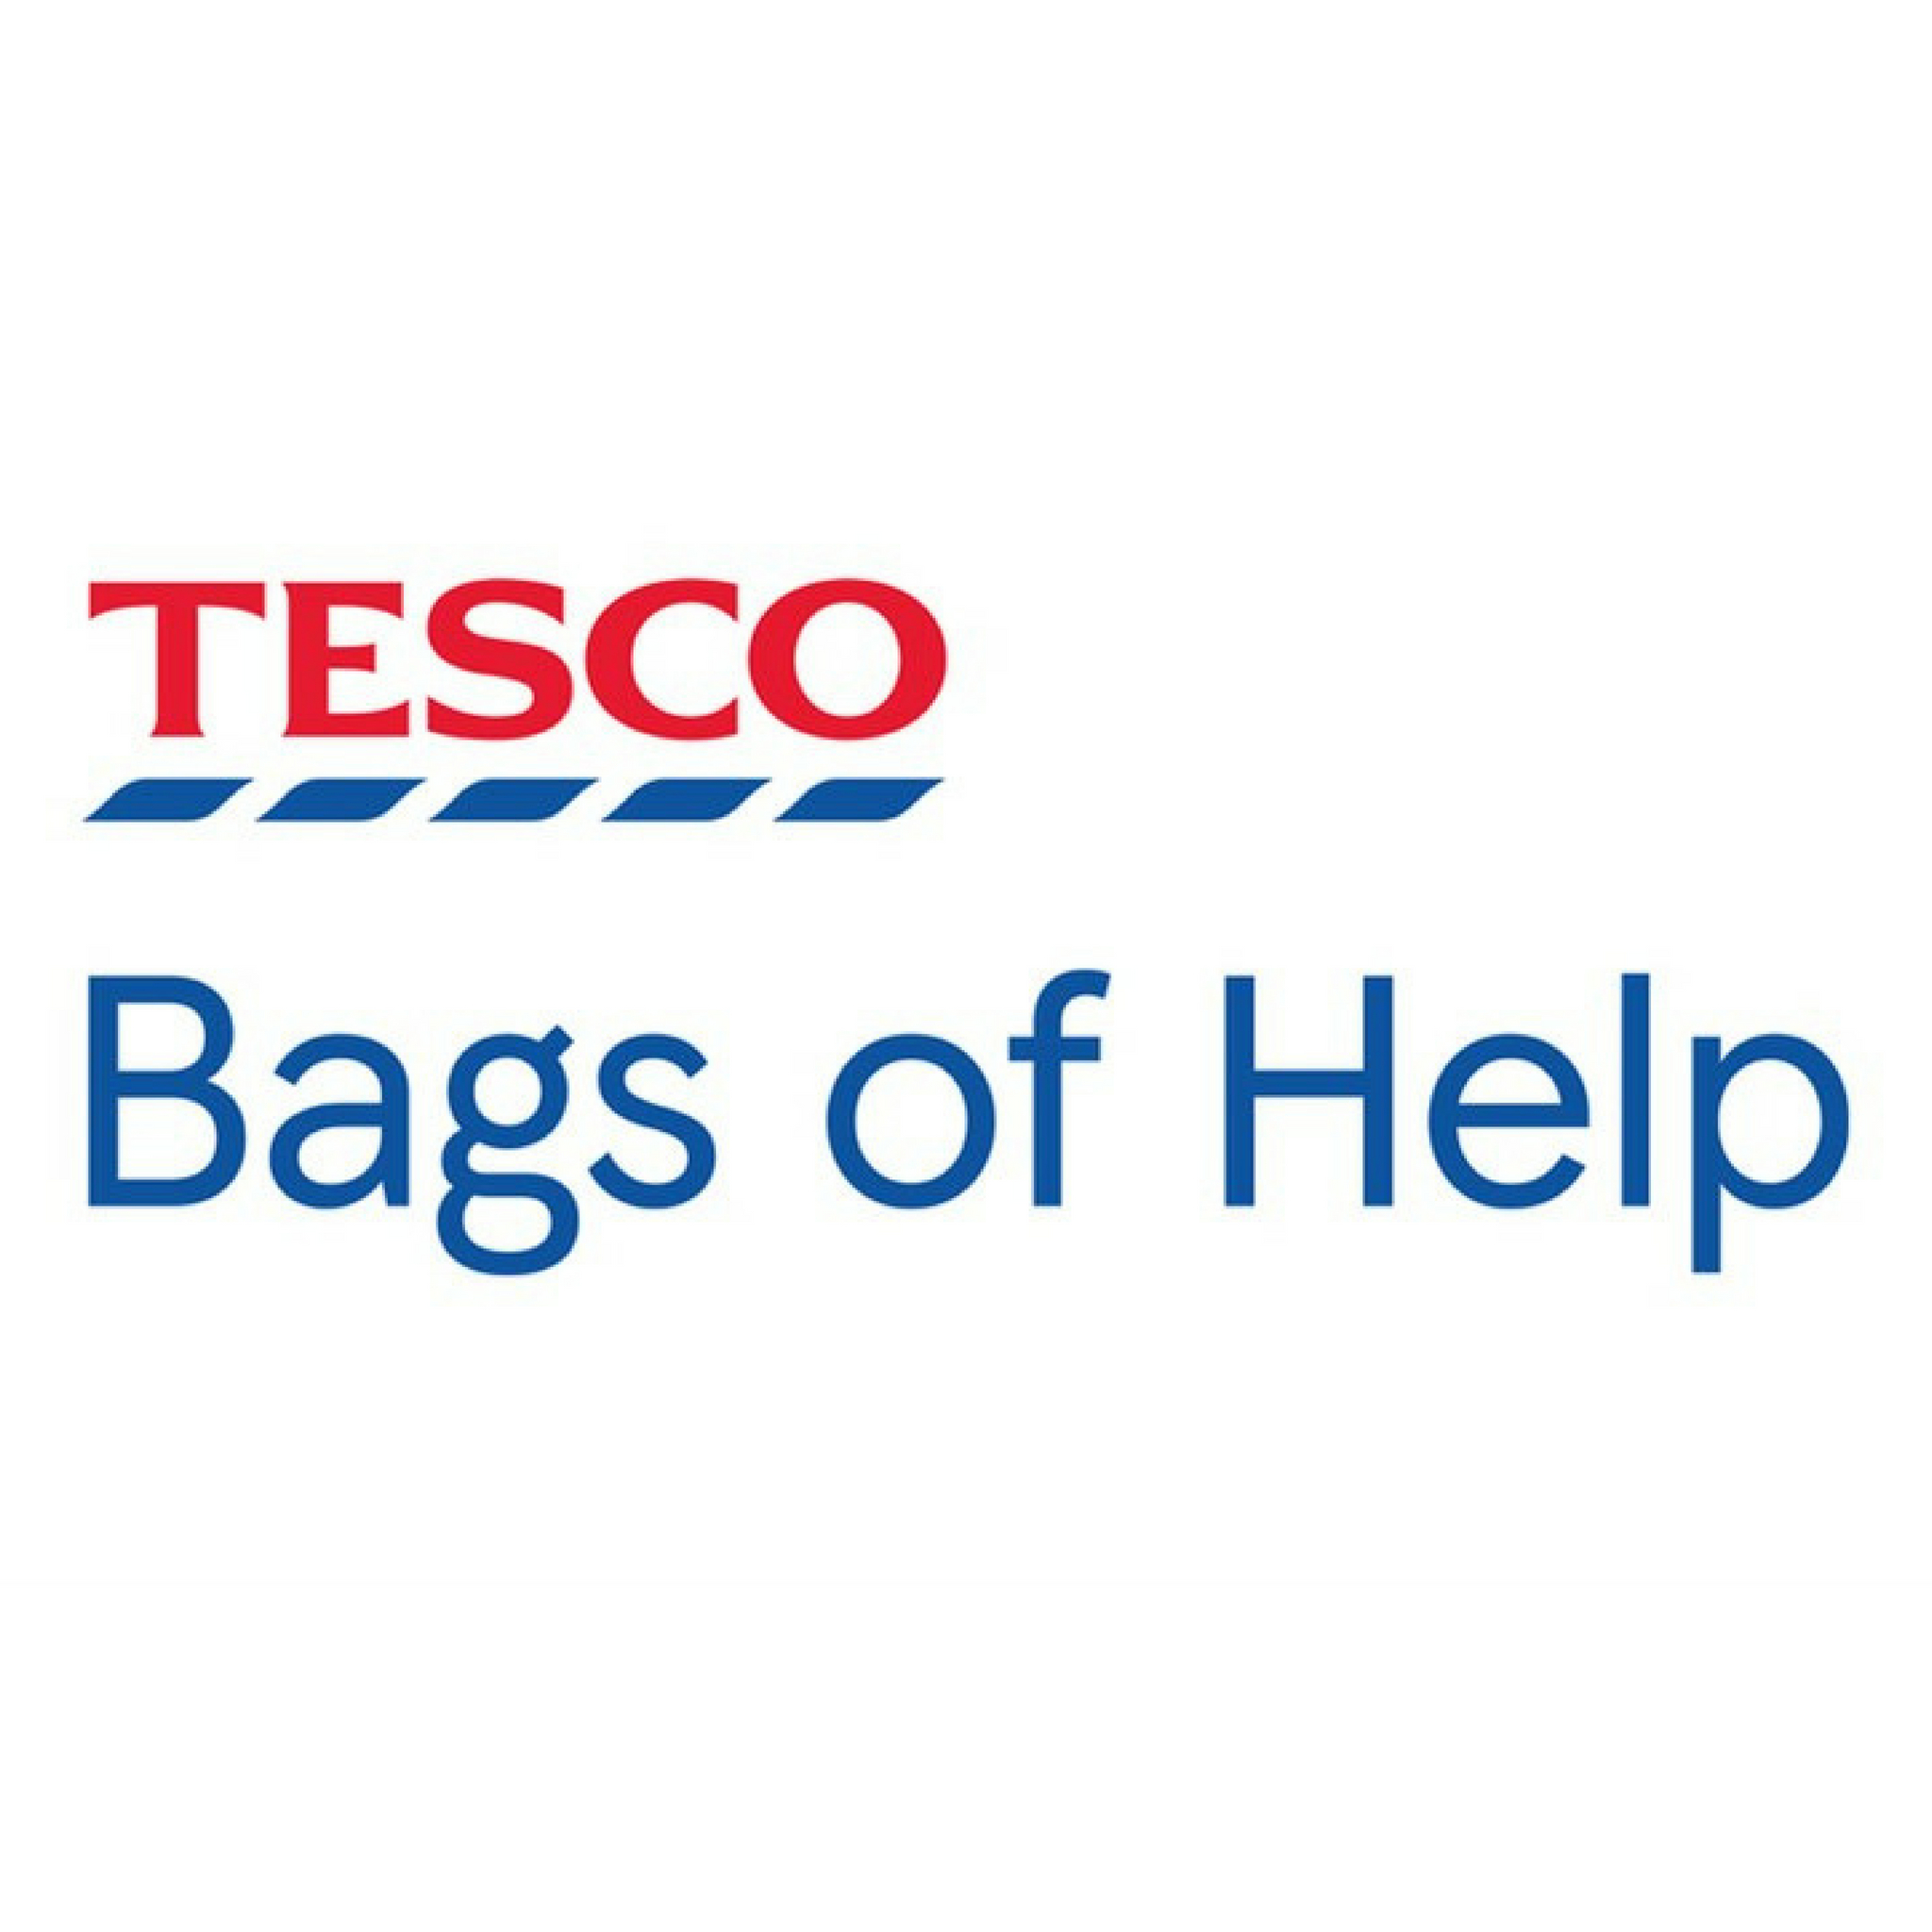 Tesco Bags of Help Scheme